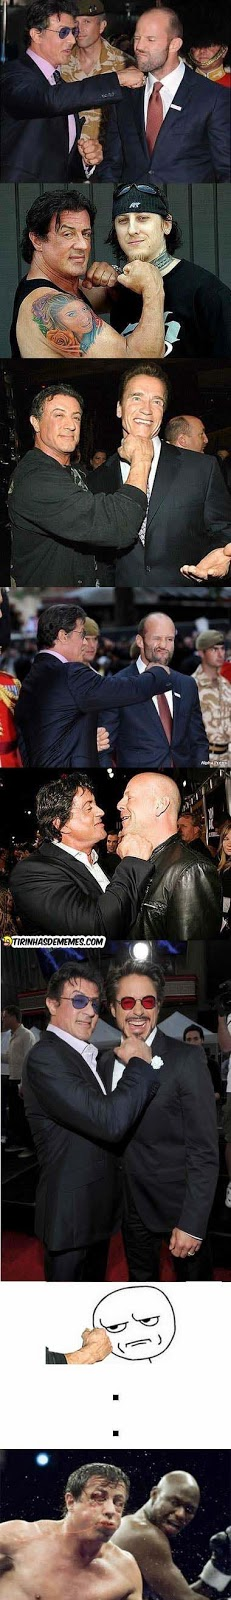 Poxa Sylvester Stallone, pra com isso!